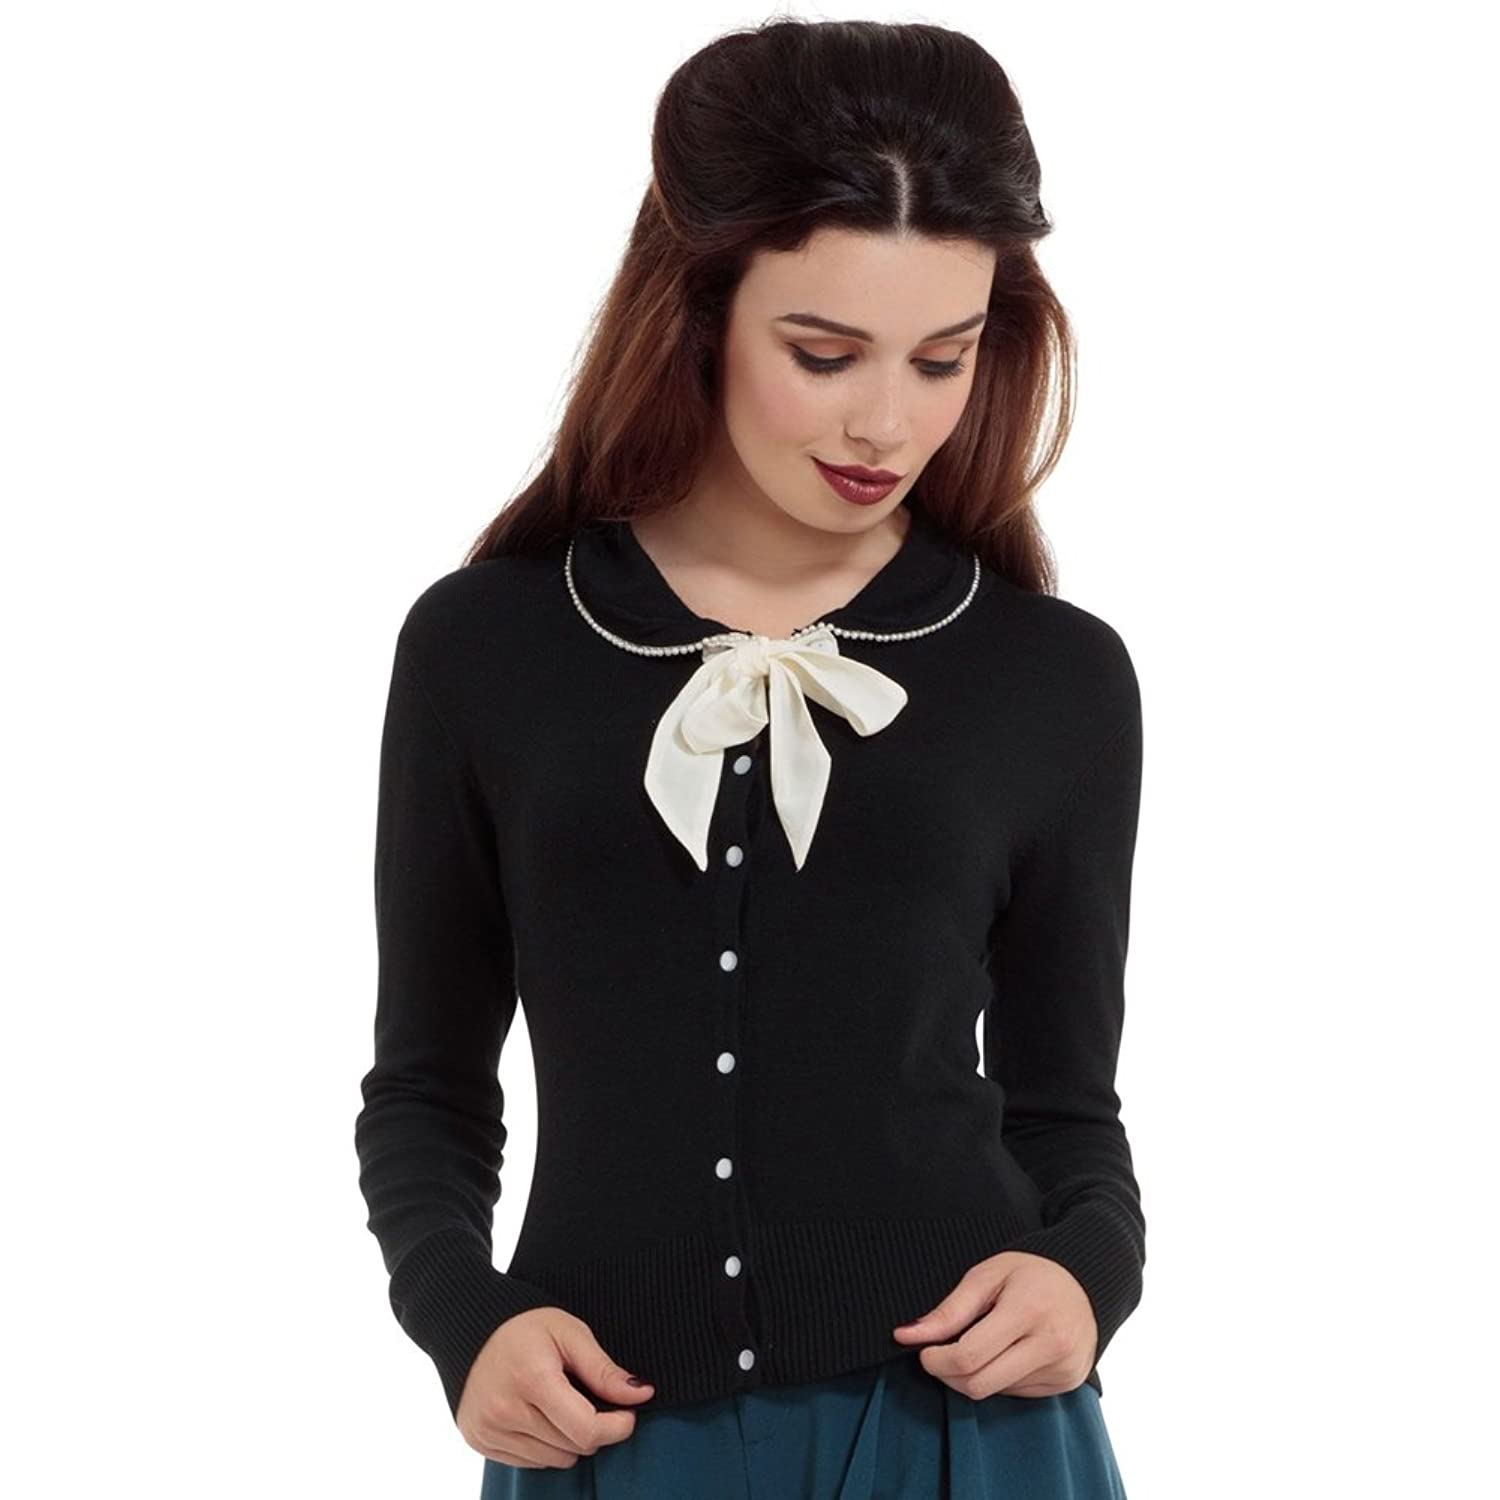 1940s Sweater Styles Womens Voodoo Vixen Katy Pearl Trim Cardigan With Removable Front Bow Black $52.95 AT vintagedancer.com